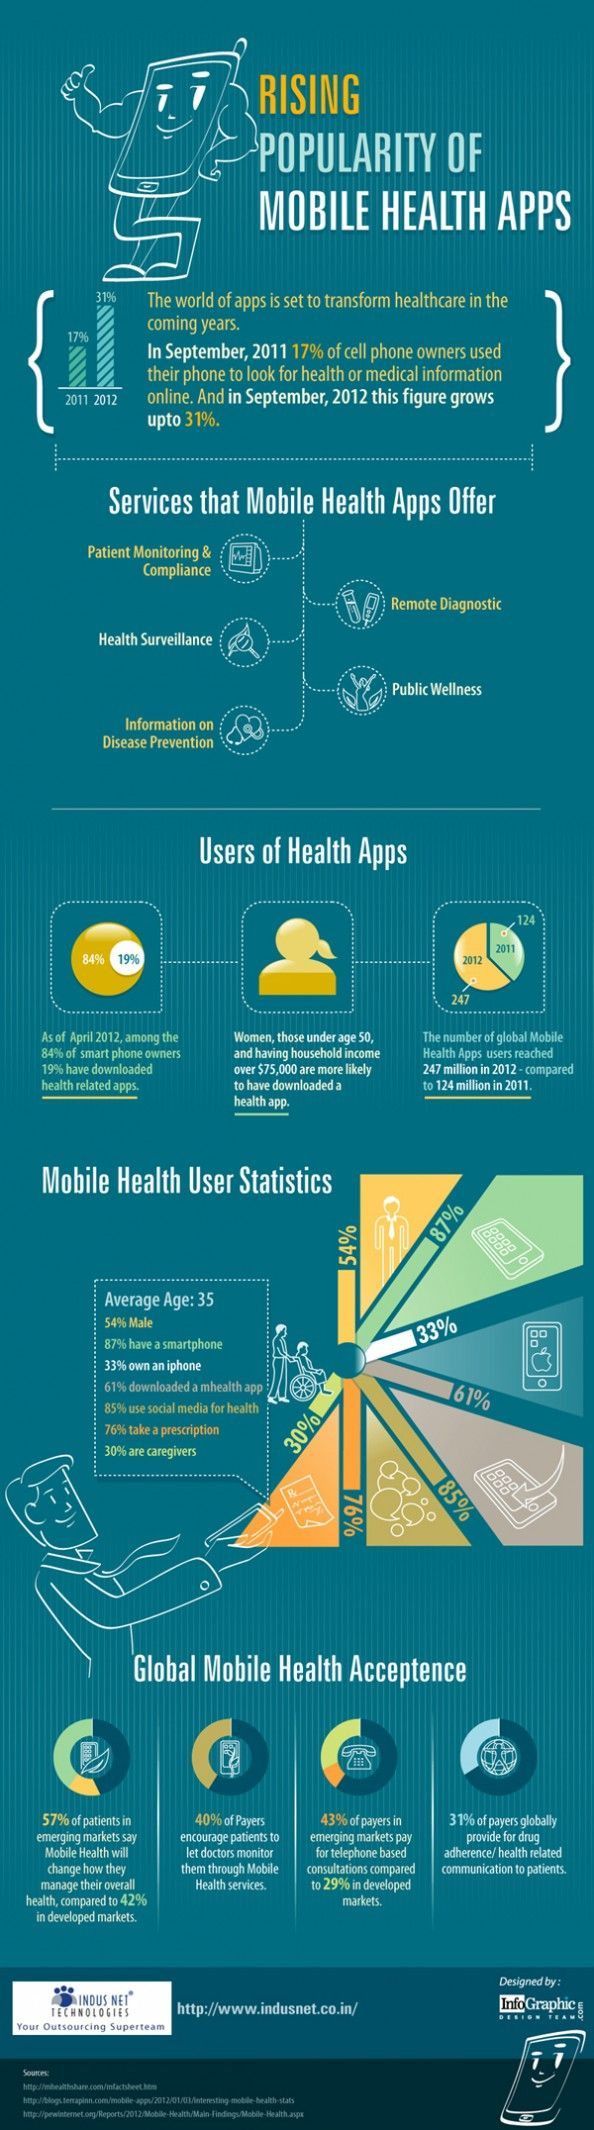 Mobile health apps are set to transform healthcare in the coming years as indicated with the growth of the use of mobile devices to access healthcare information. In September 2011, 17 percent of cell phone owners used their phone to look for health or medical information online. In September 2012, this figure grew to 31 percent.